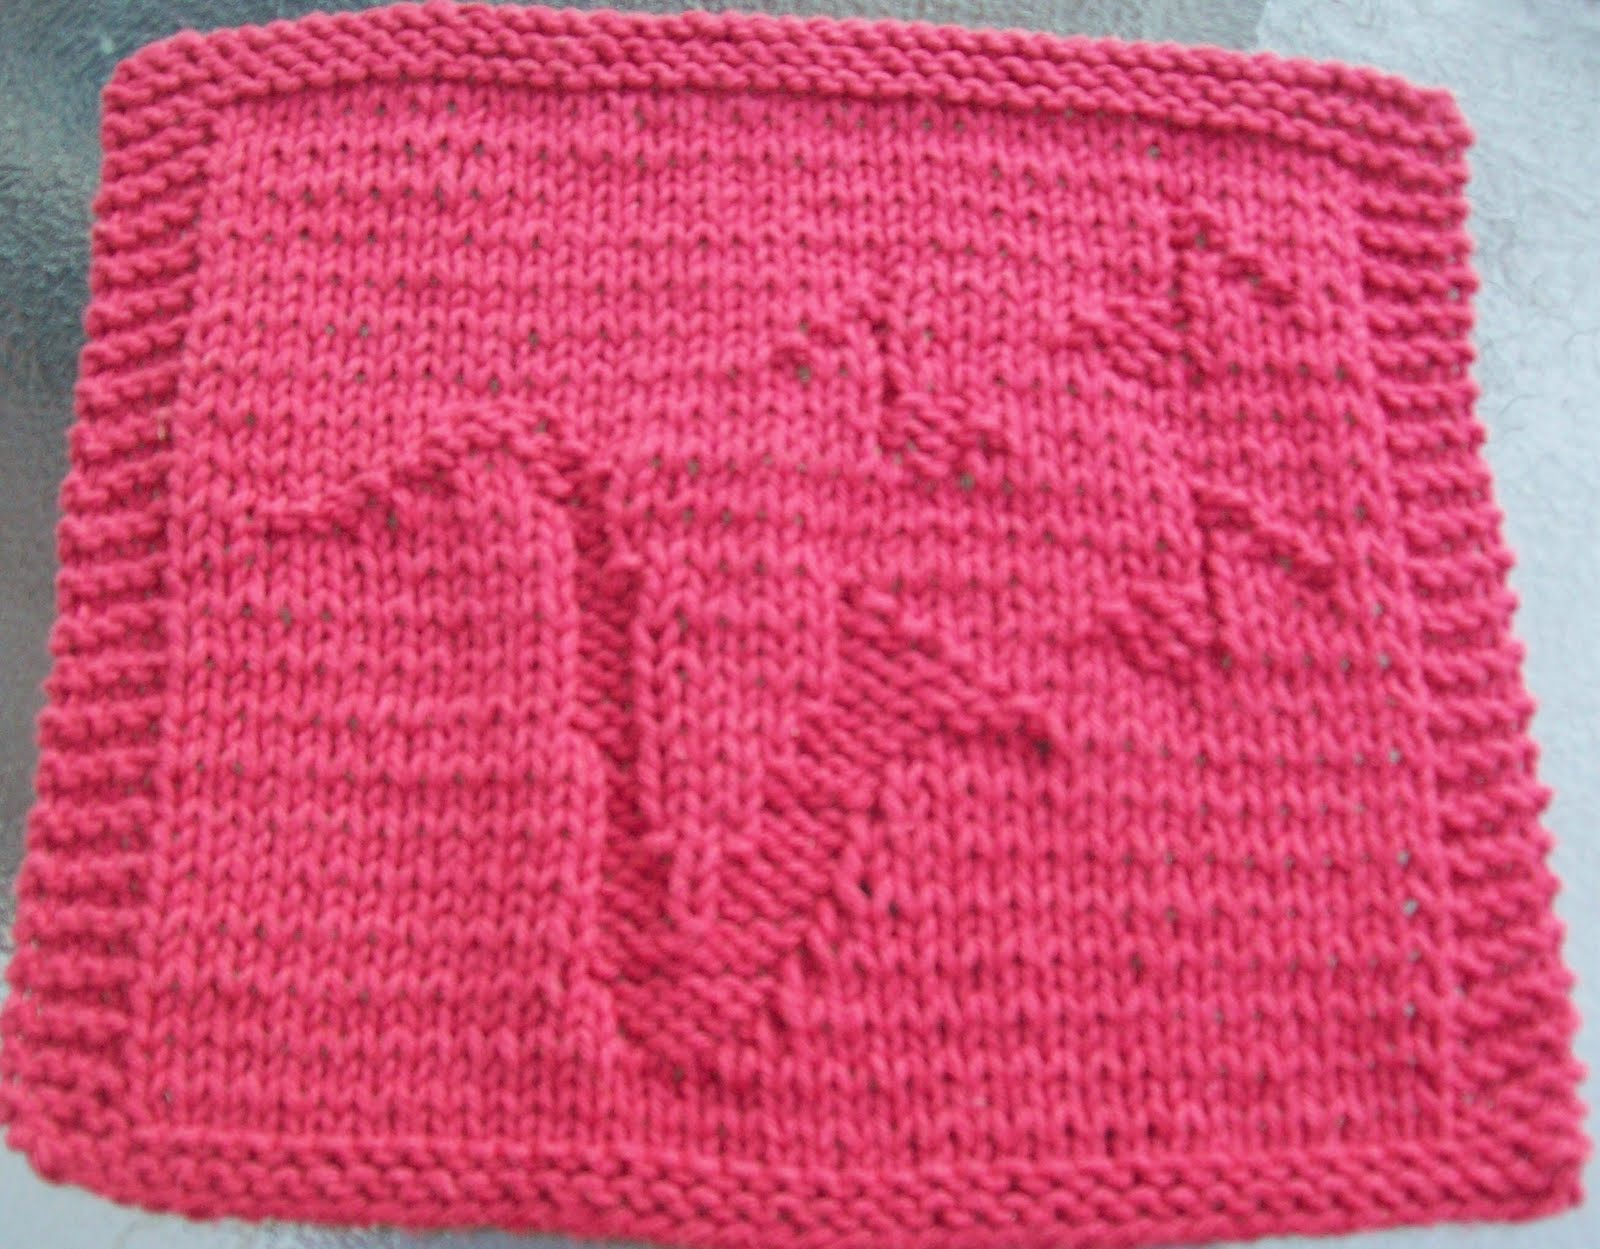 DigKnitty Designs: Saxophone Knit Dishcloth Pattern